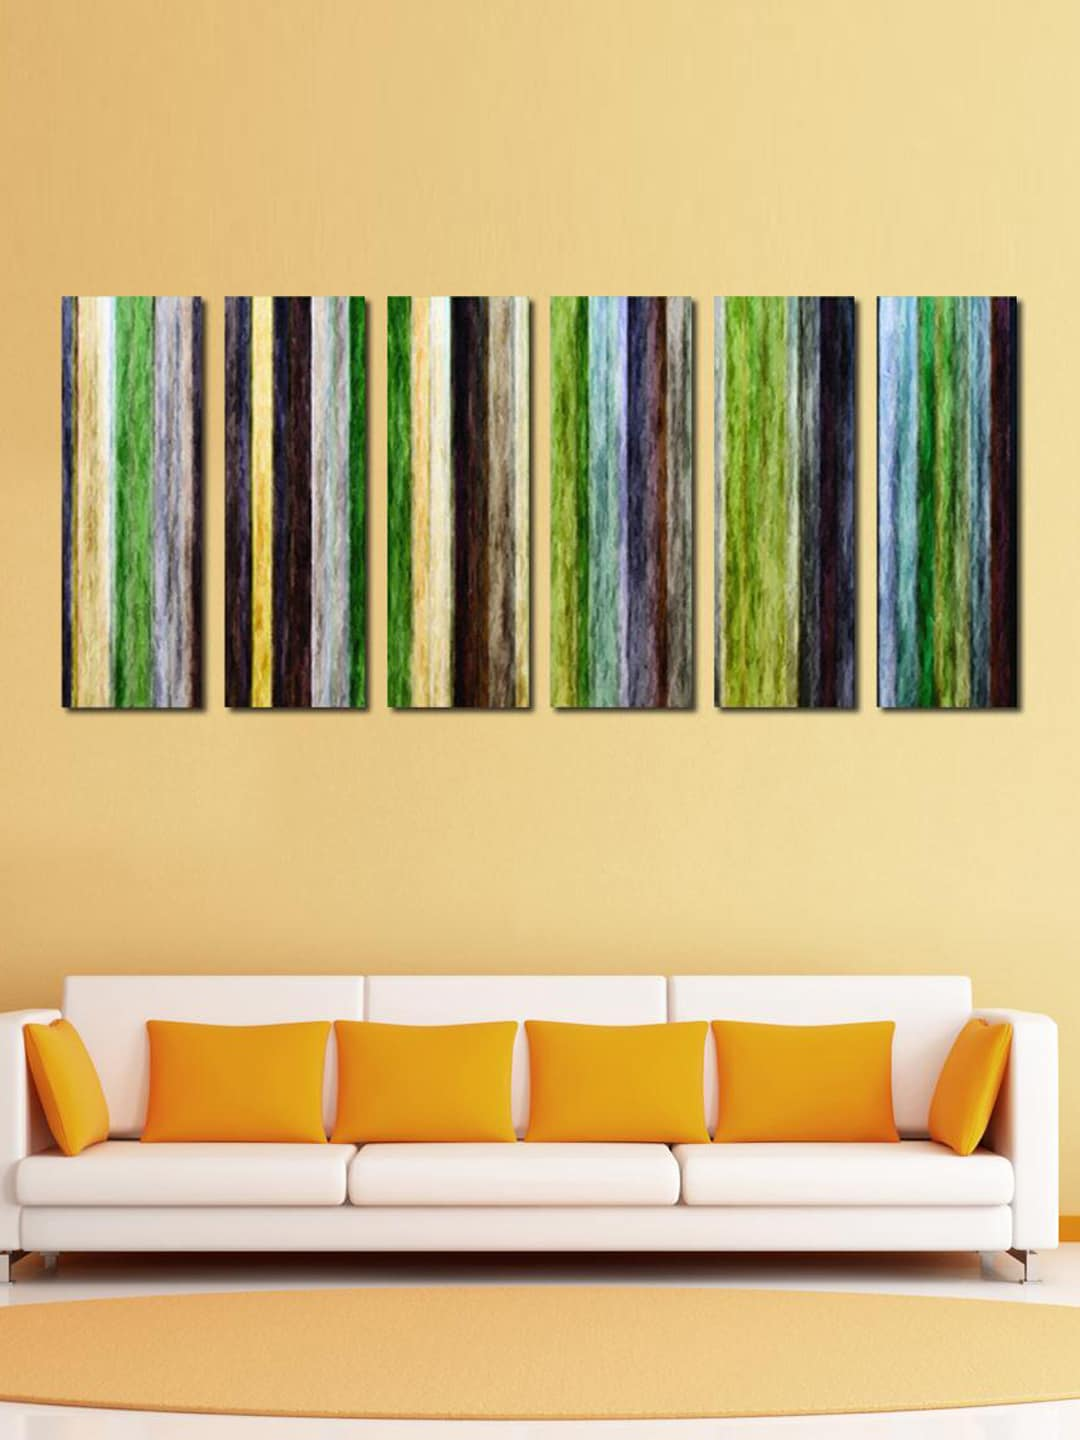 Wall Art - Buy Wall Arts Online at Best Price in India | Myntra